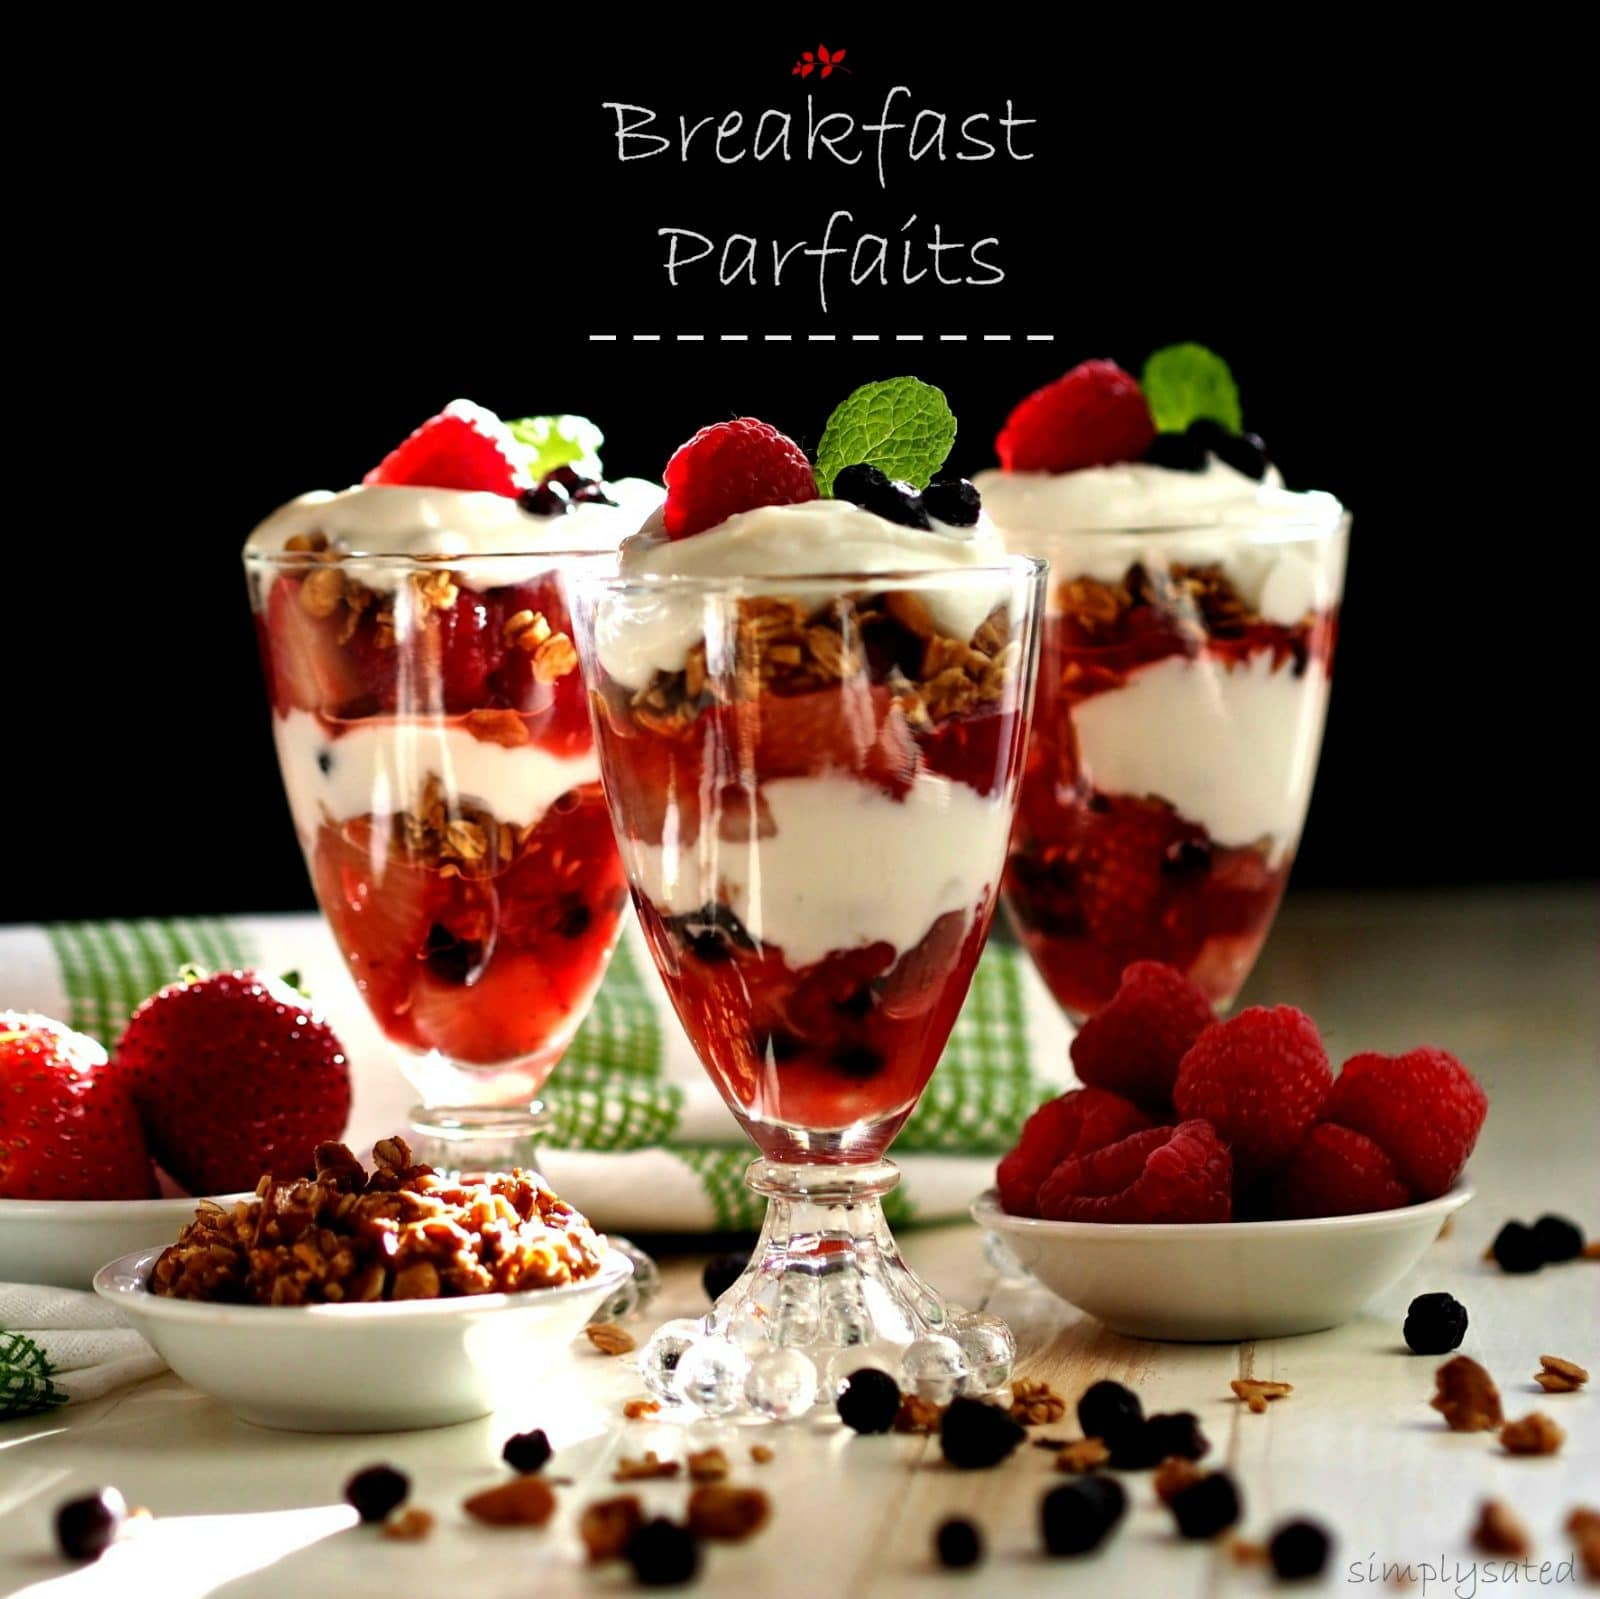 Breakfast Parfaits aren't only beautiful, they are healthy, nutritious & delicious. Strawberries, raspberries, Greek yogurt and crunchy homemade granola.